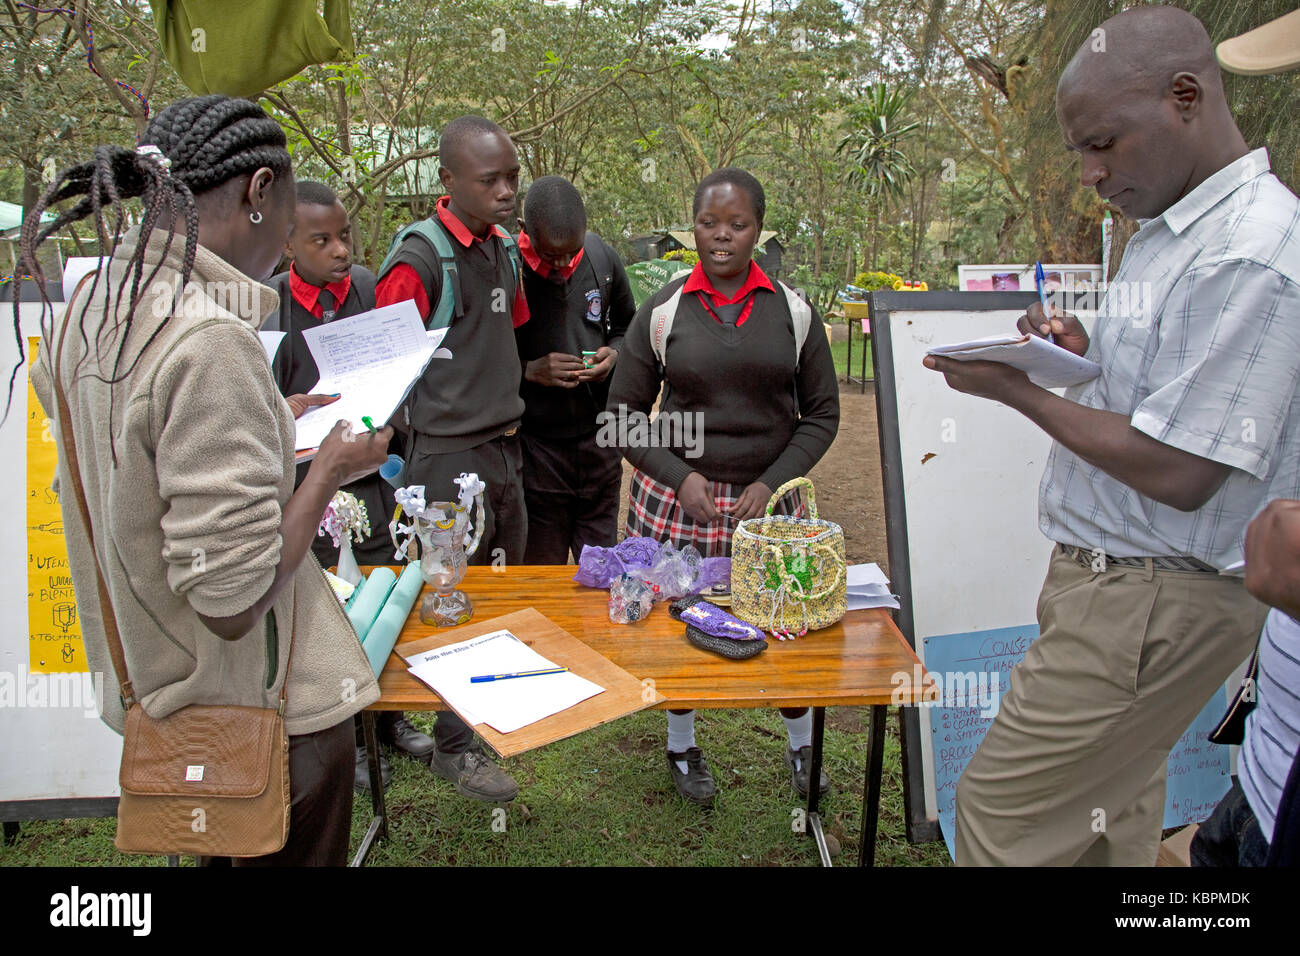 Judging school environmental project making baskets waste plastic bags CES open day 2017 Kenya - Stock Image